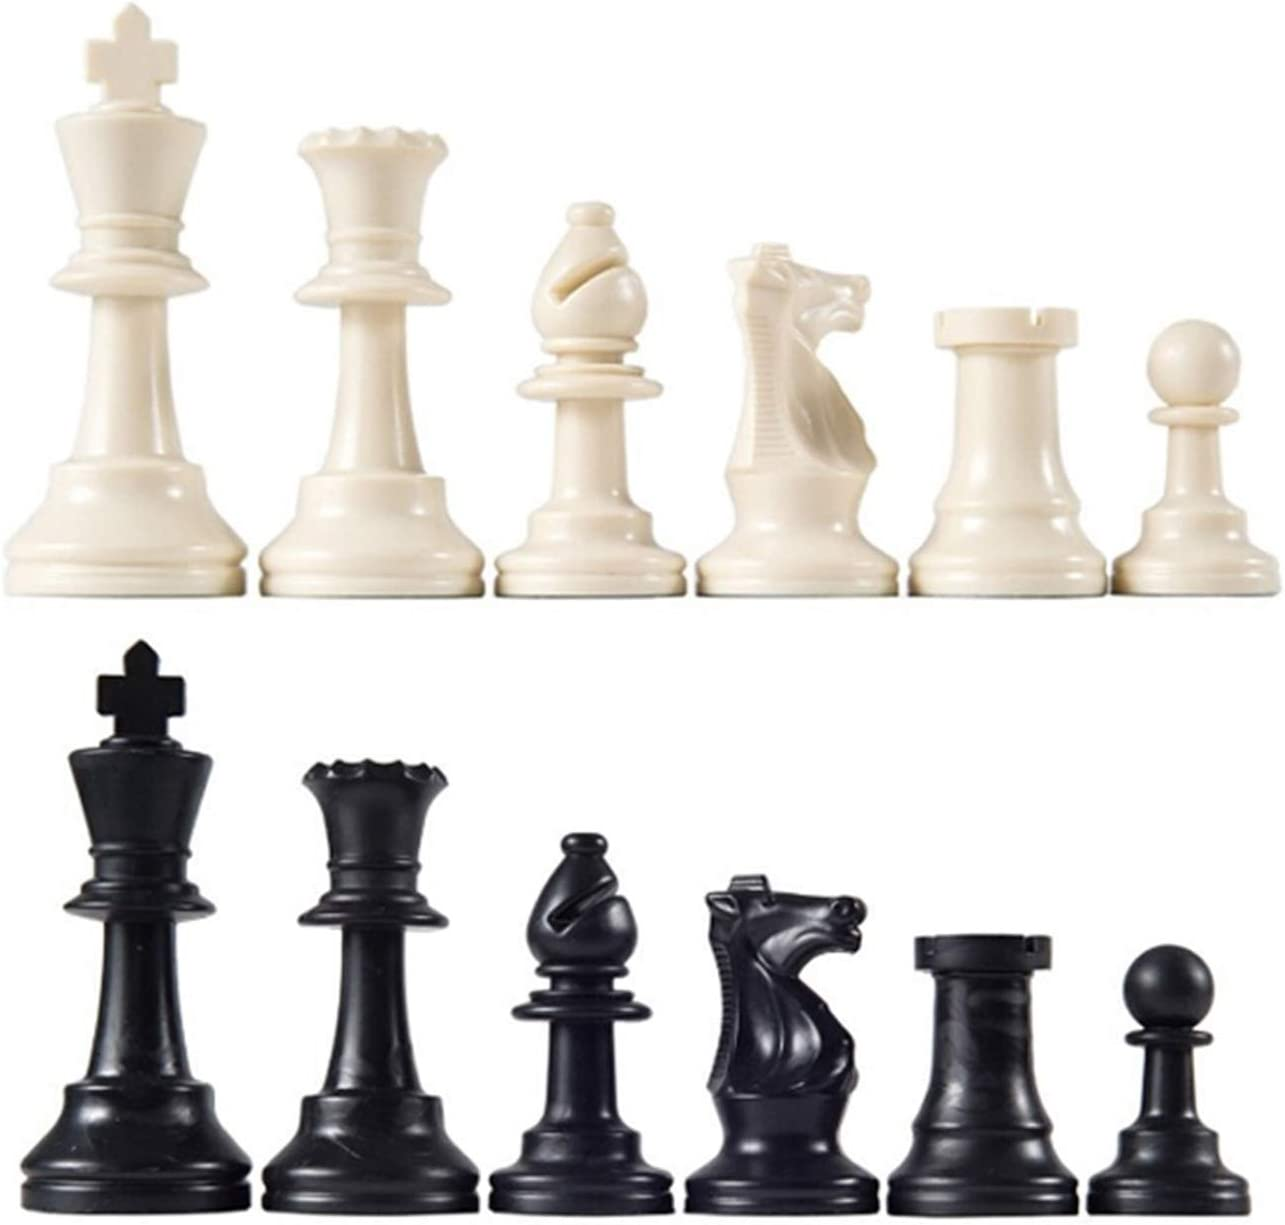 Zenli Chess Popular product 32pcs Medieval Pieces Plastic Complete Inte Chessmen Max 70% OFF